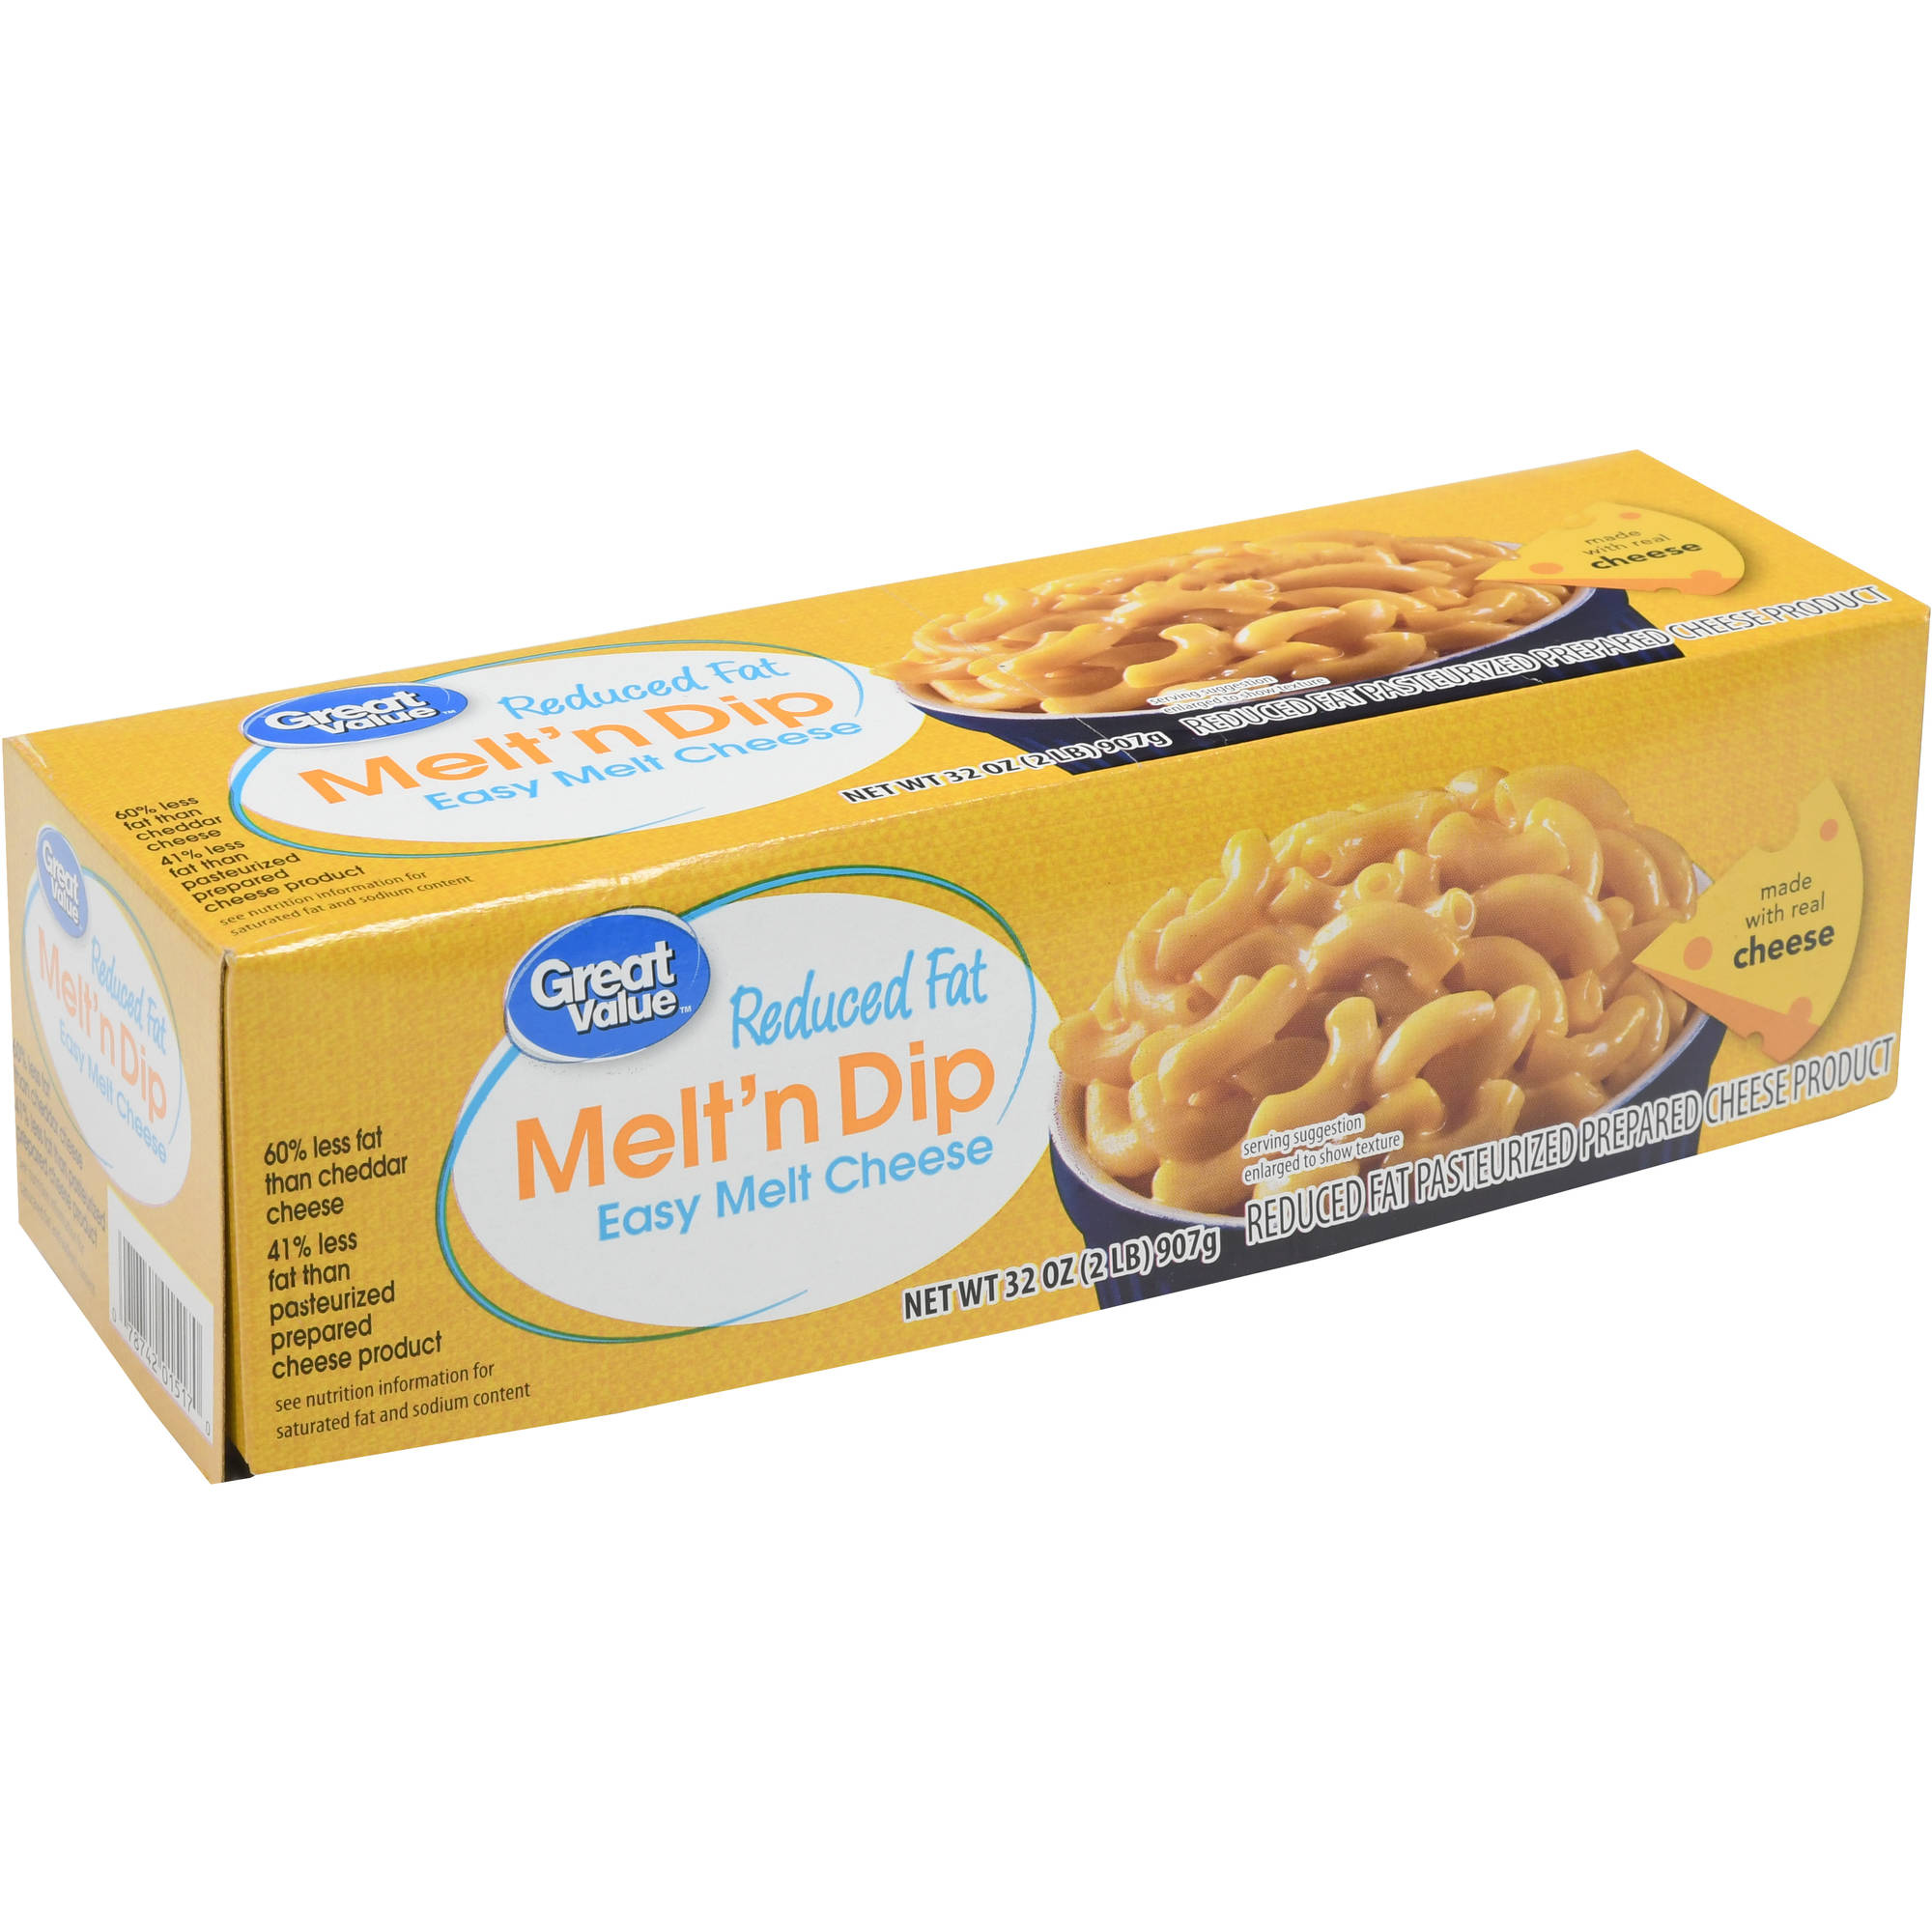 Great Value Easy Melt Reduced Fat Cheese Product, 32 oz by Generic